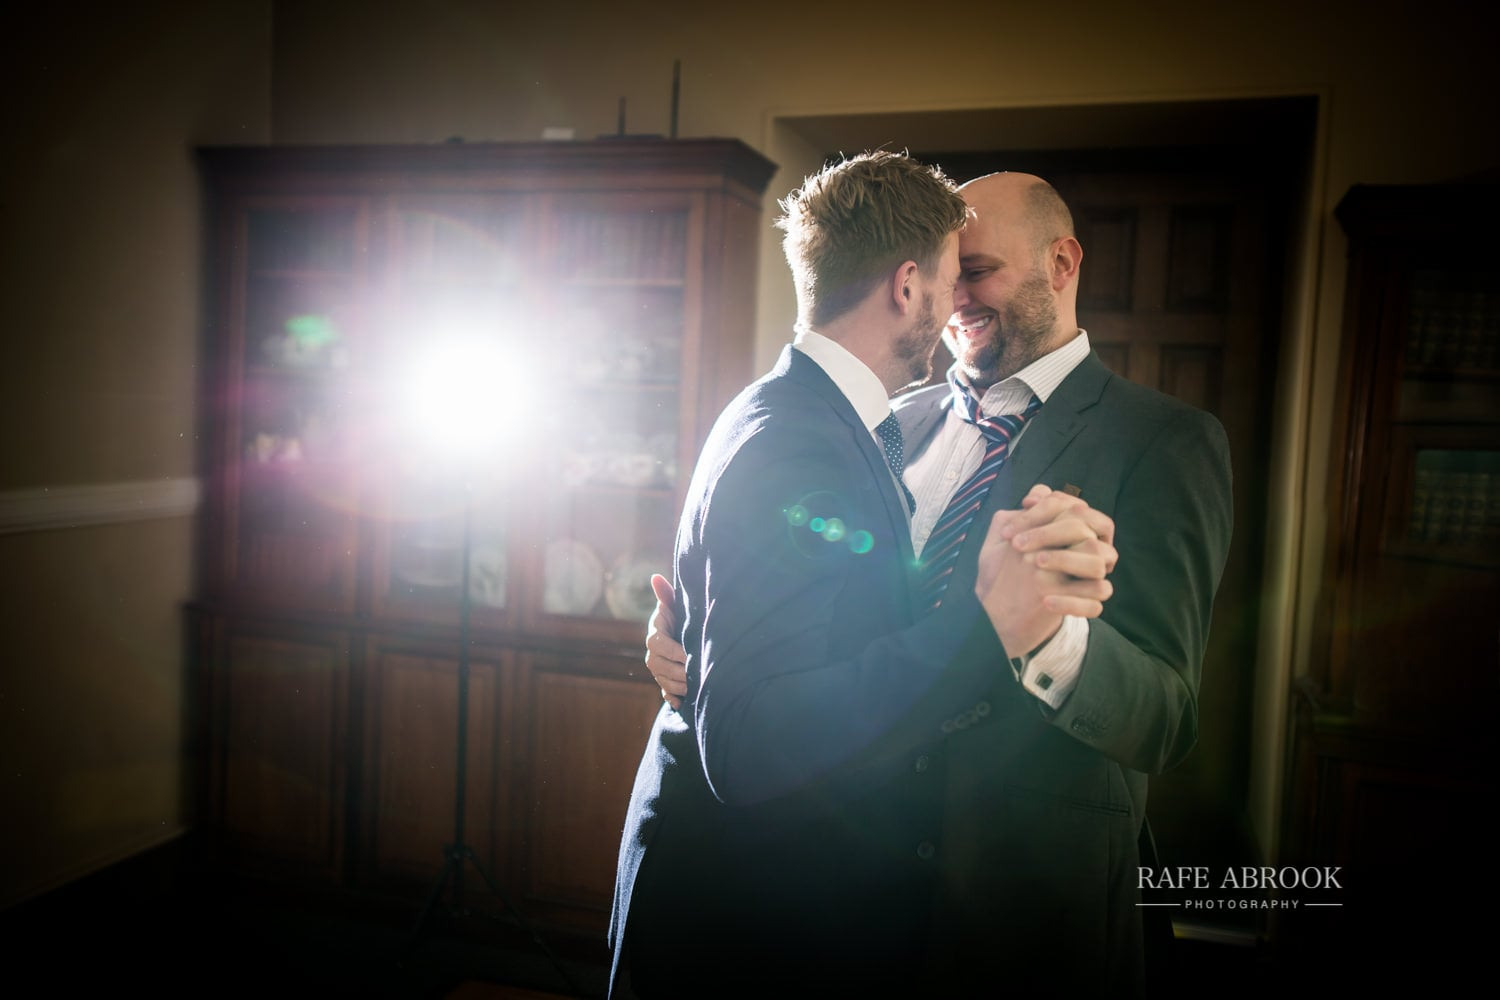 woodland manor hotel clapham bedford wedding hertfordshire wedding photographer-1284.jpg